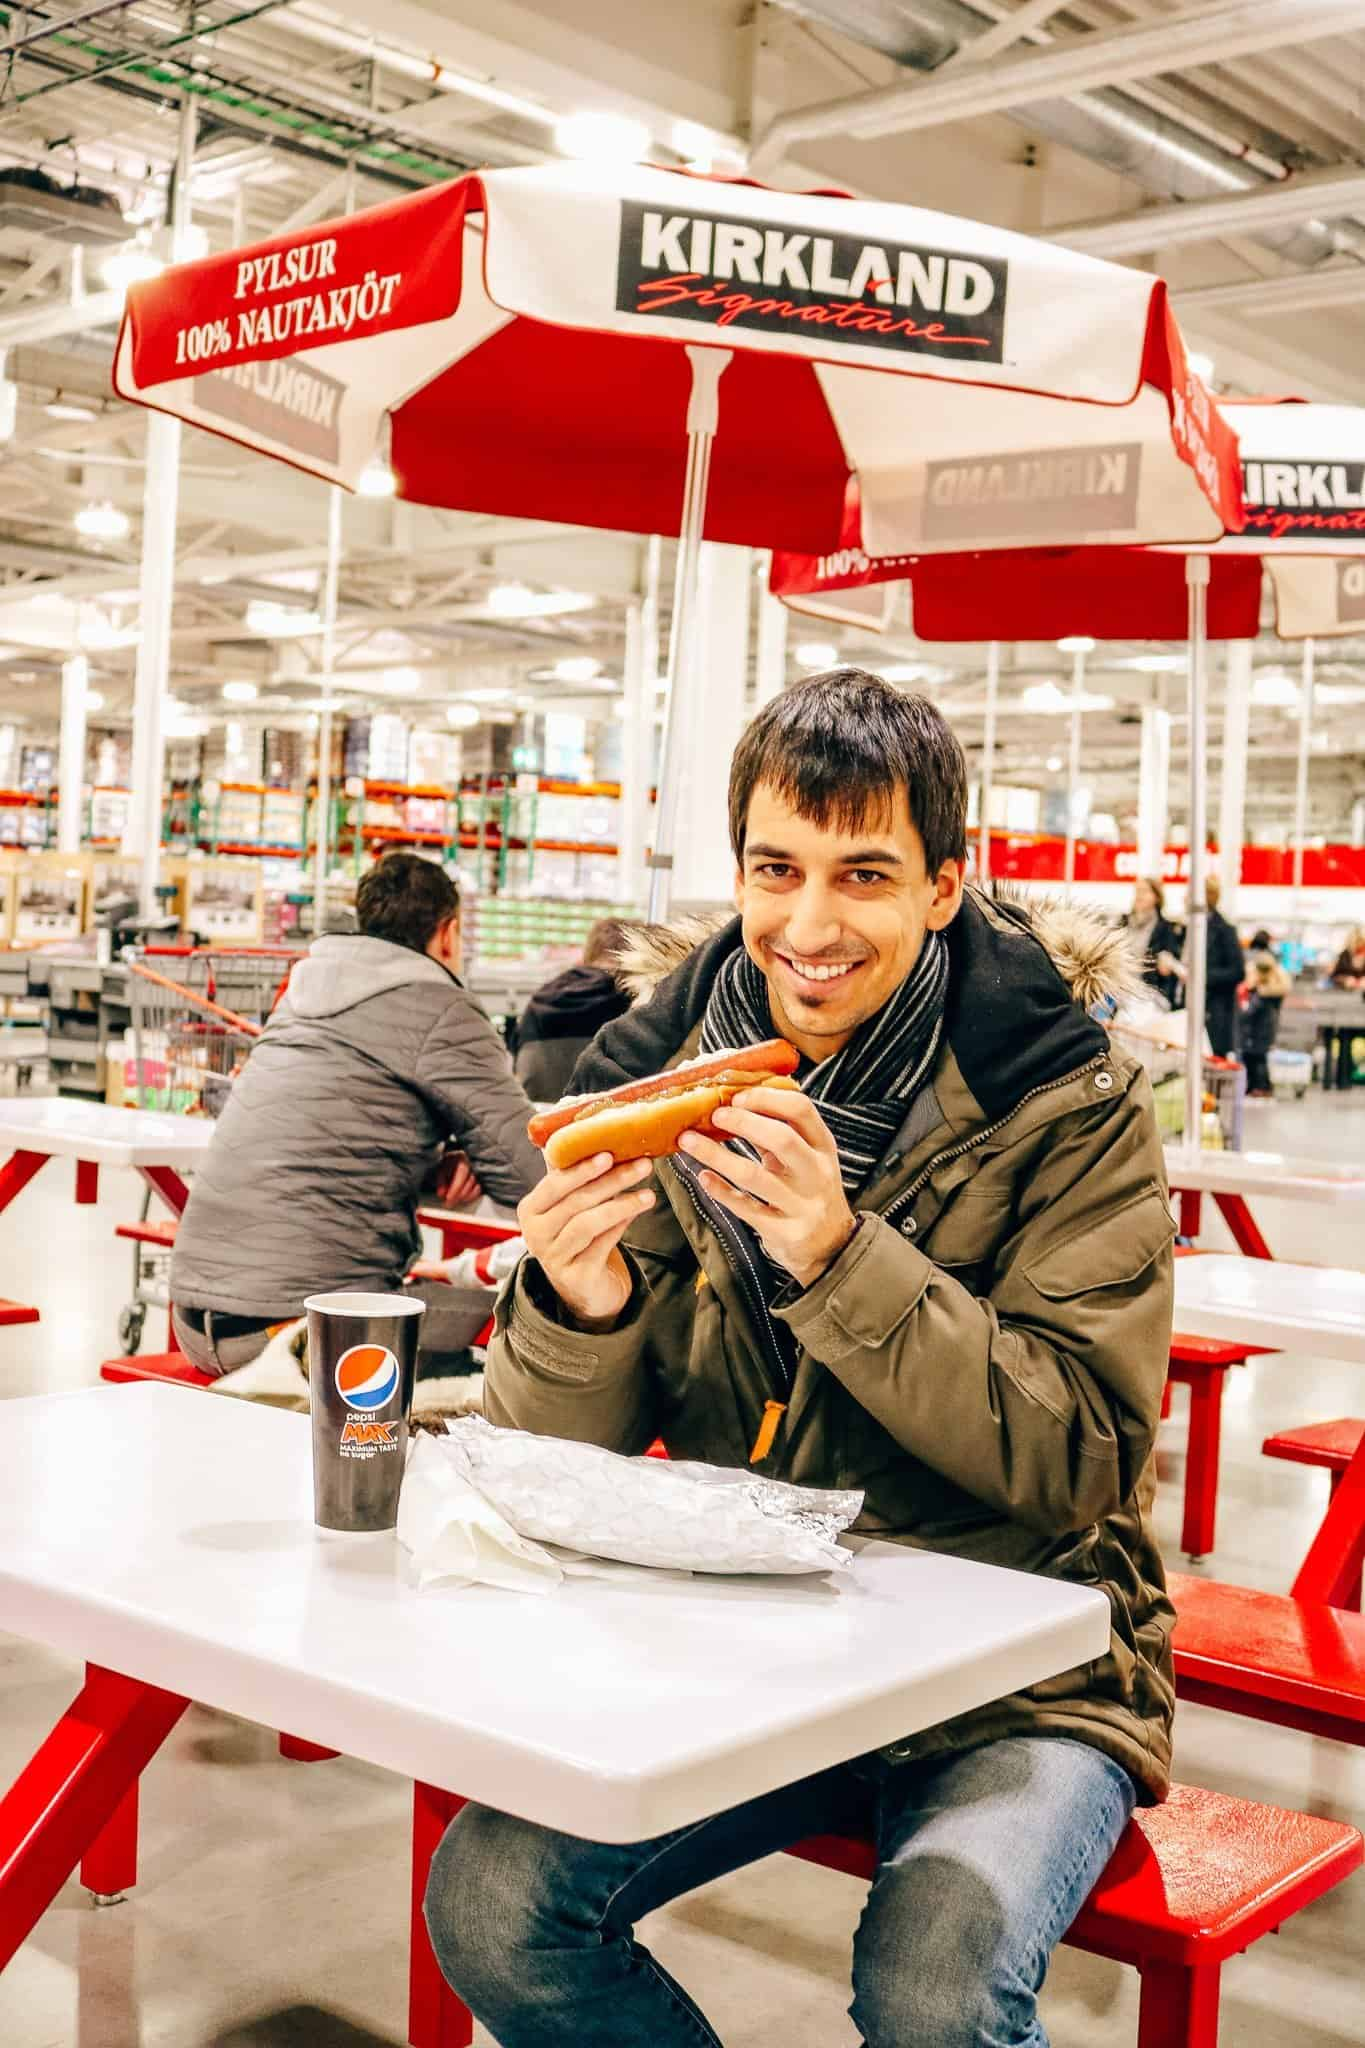 Costco in Iceland - 5 Things to Know Before You Go - The Next Trip